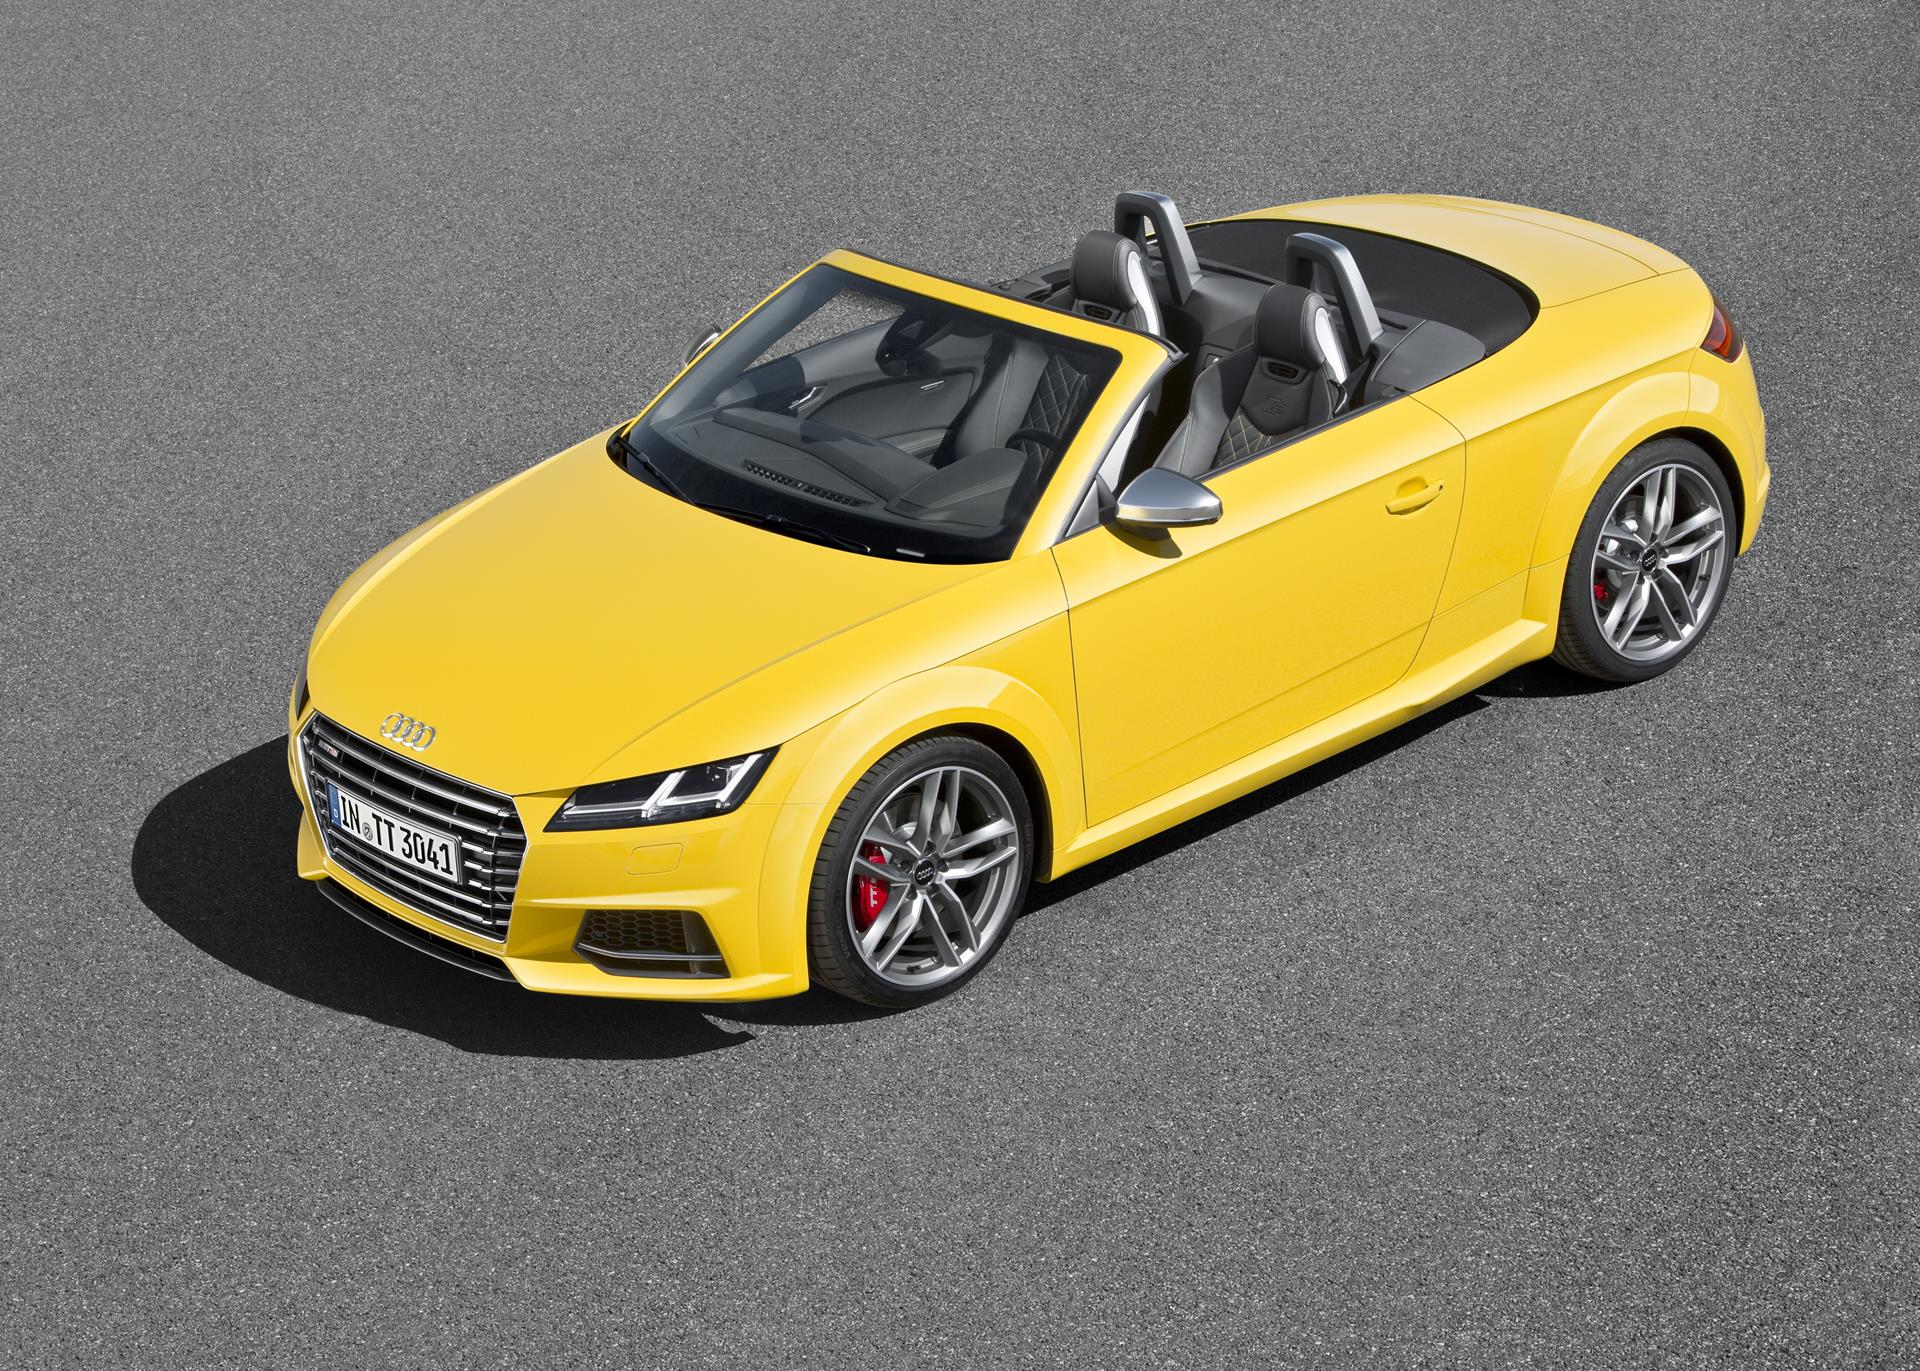 2016 audi tt roadster pq35 36 pictures information and specs auto. Black Bedroom Furniture Sets. Home Design Ideas